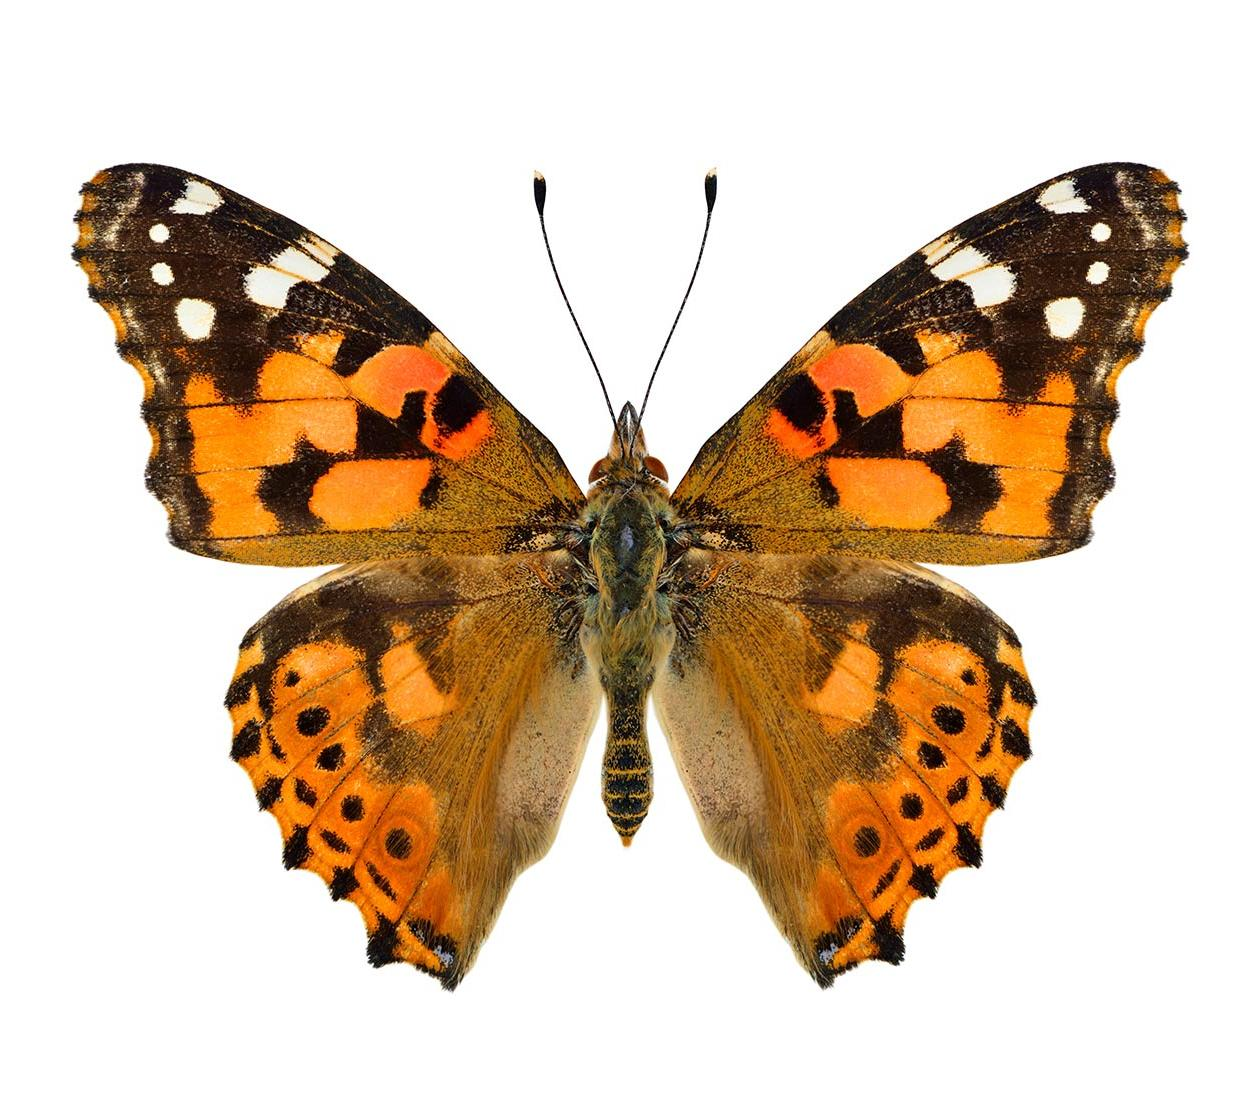 Painted lady butterfly in front of white backdrop